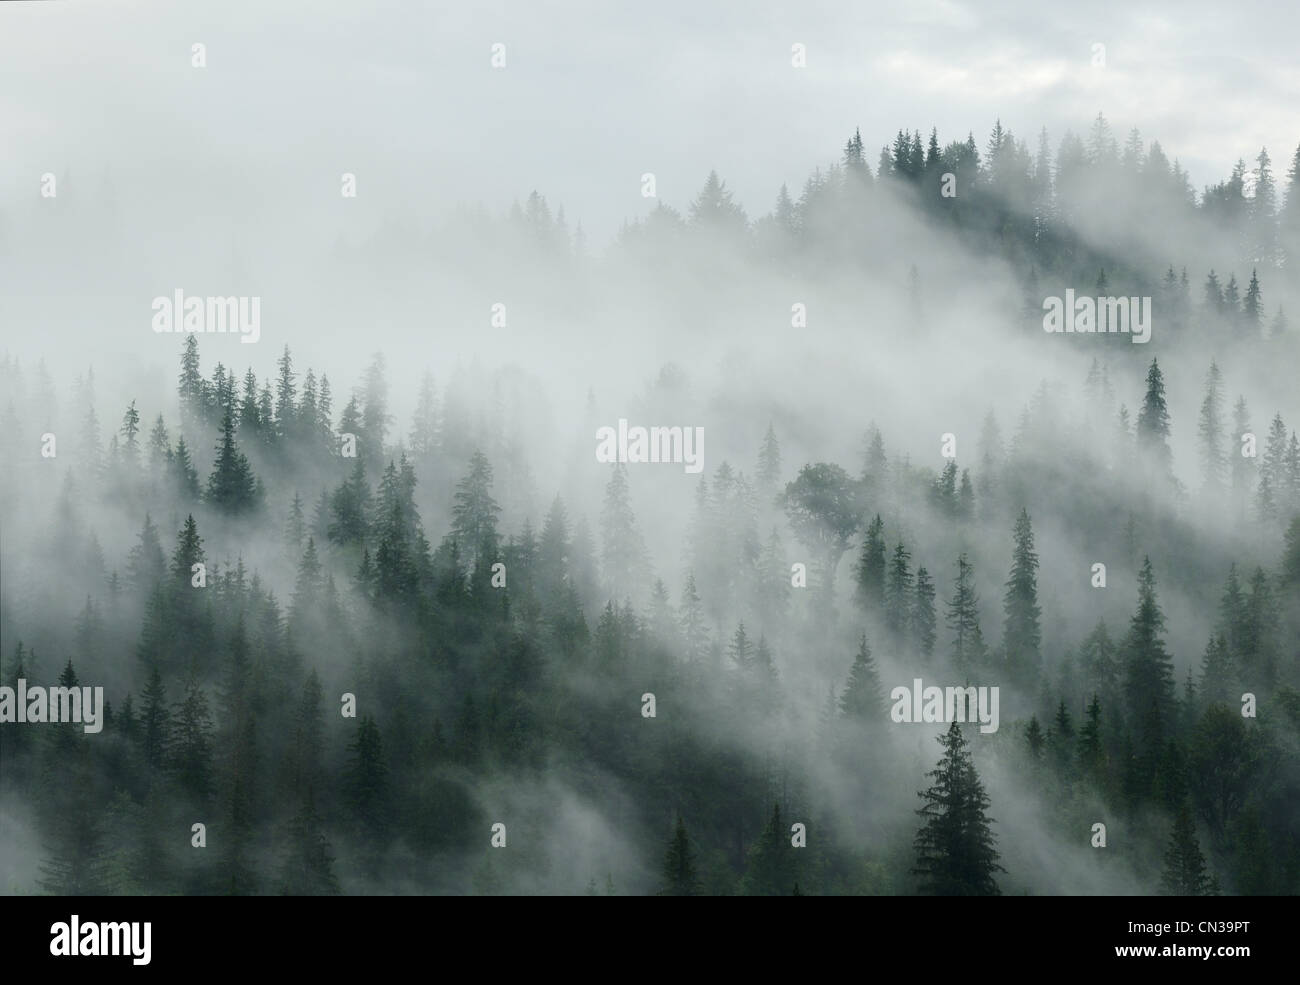 Mist over forest, Dzembronya area, Carpathian Mountains, Ukraine - Stock Image